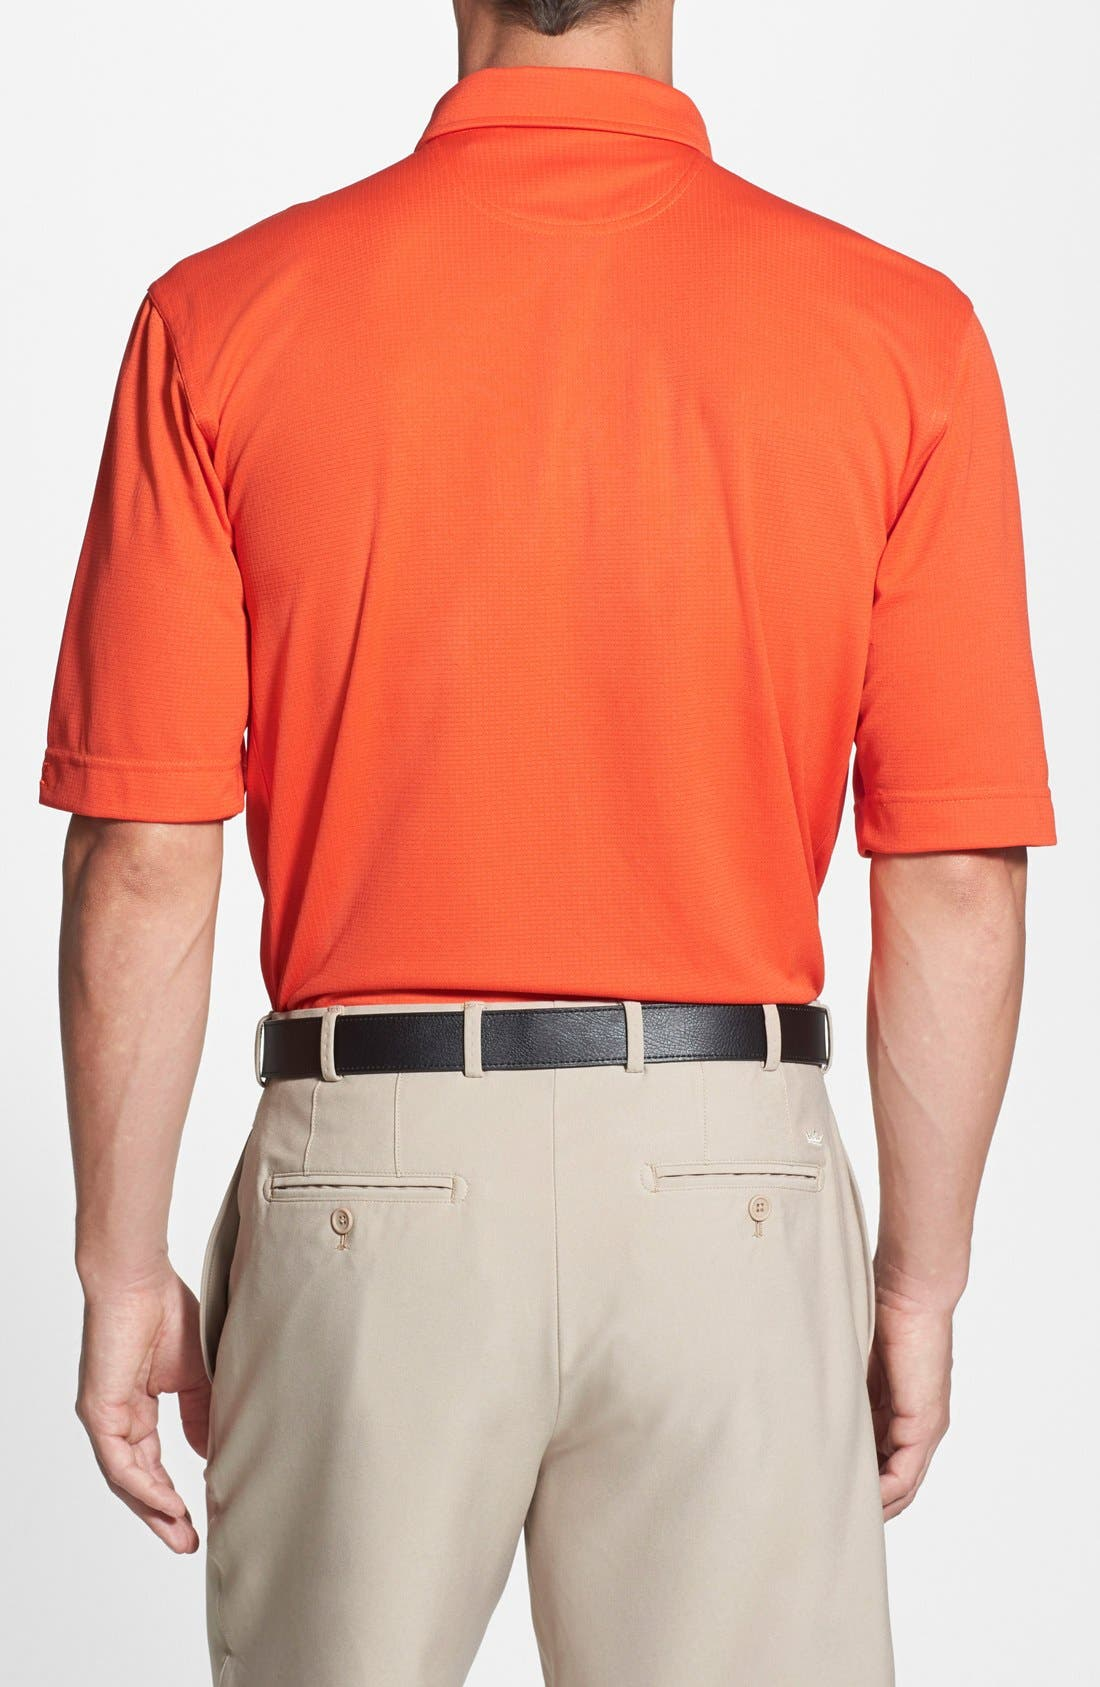 Cleveland Browns - Genre DryTec Moisture Wicking Polo,                             Alternate thumbnail 2, color,                             820